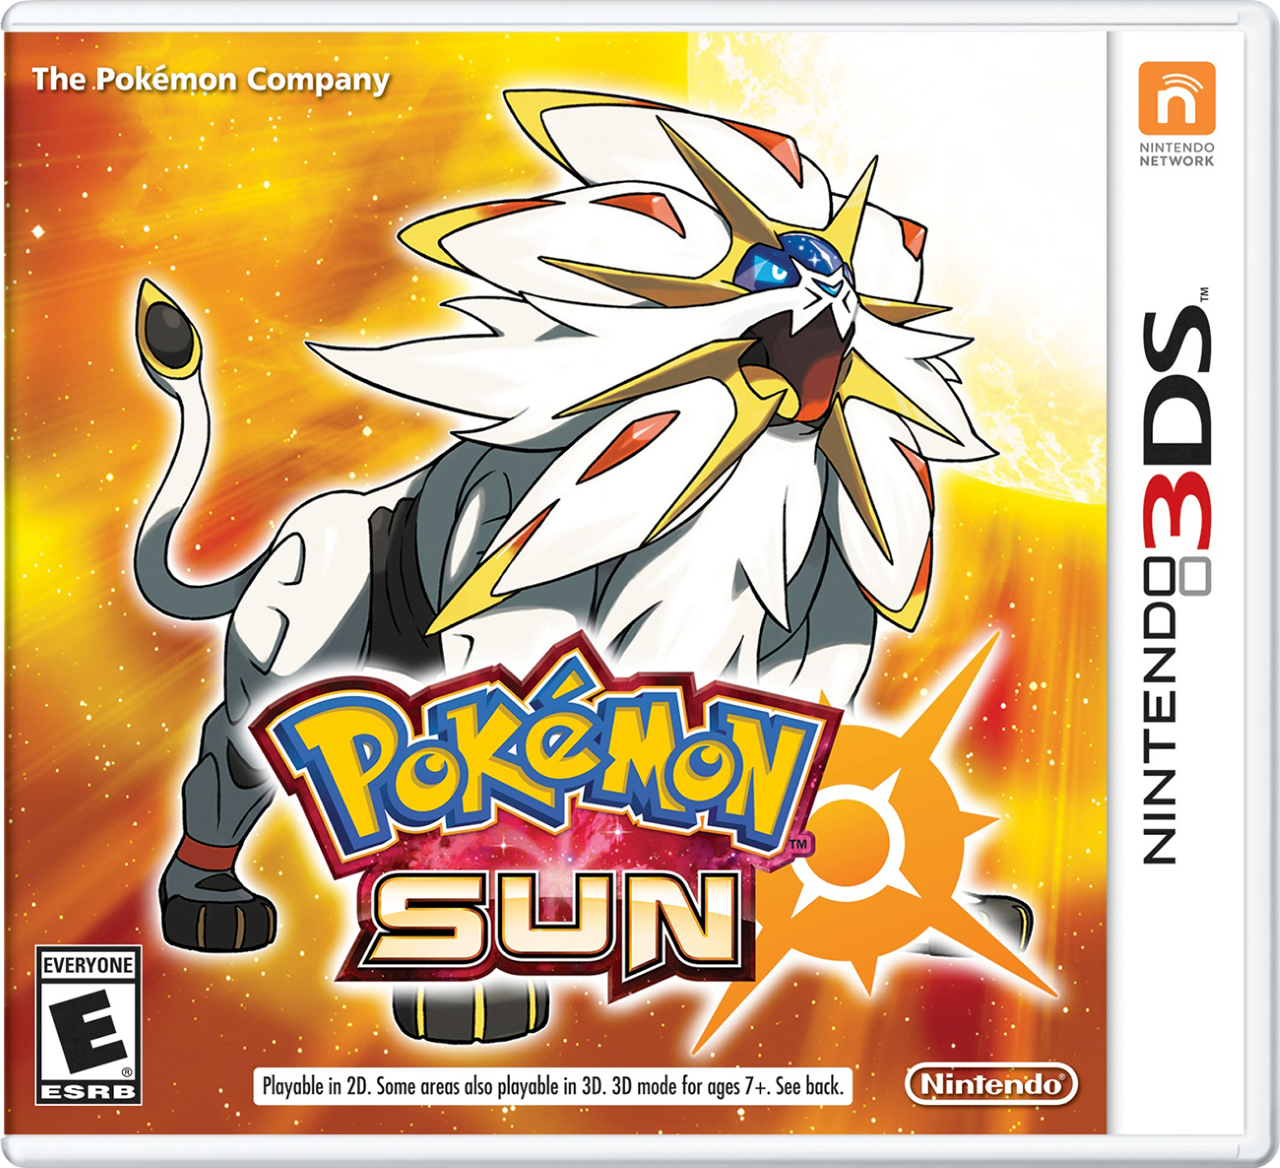 ⚡ Download gba pokemon sun and moon | Pokemon Sun and Moon Rom